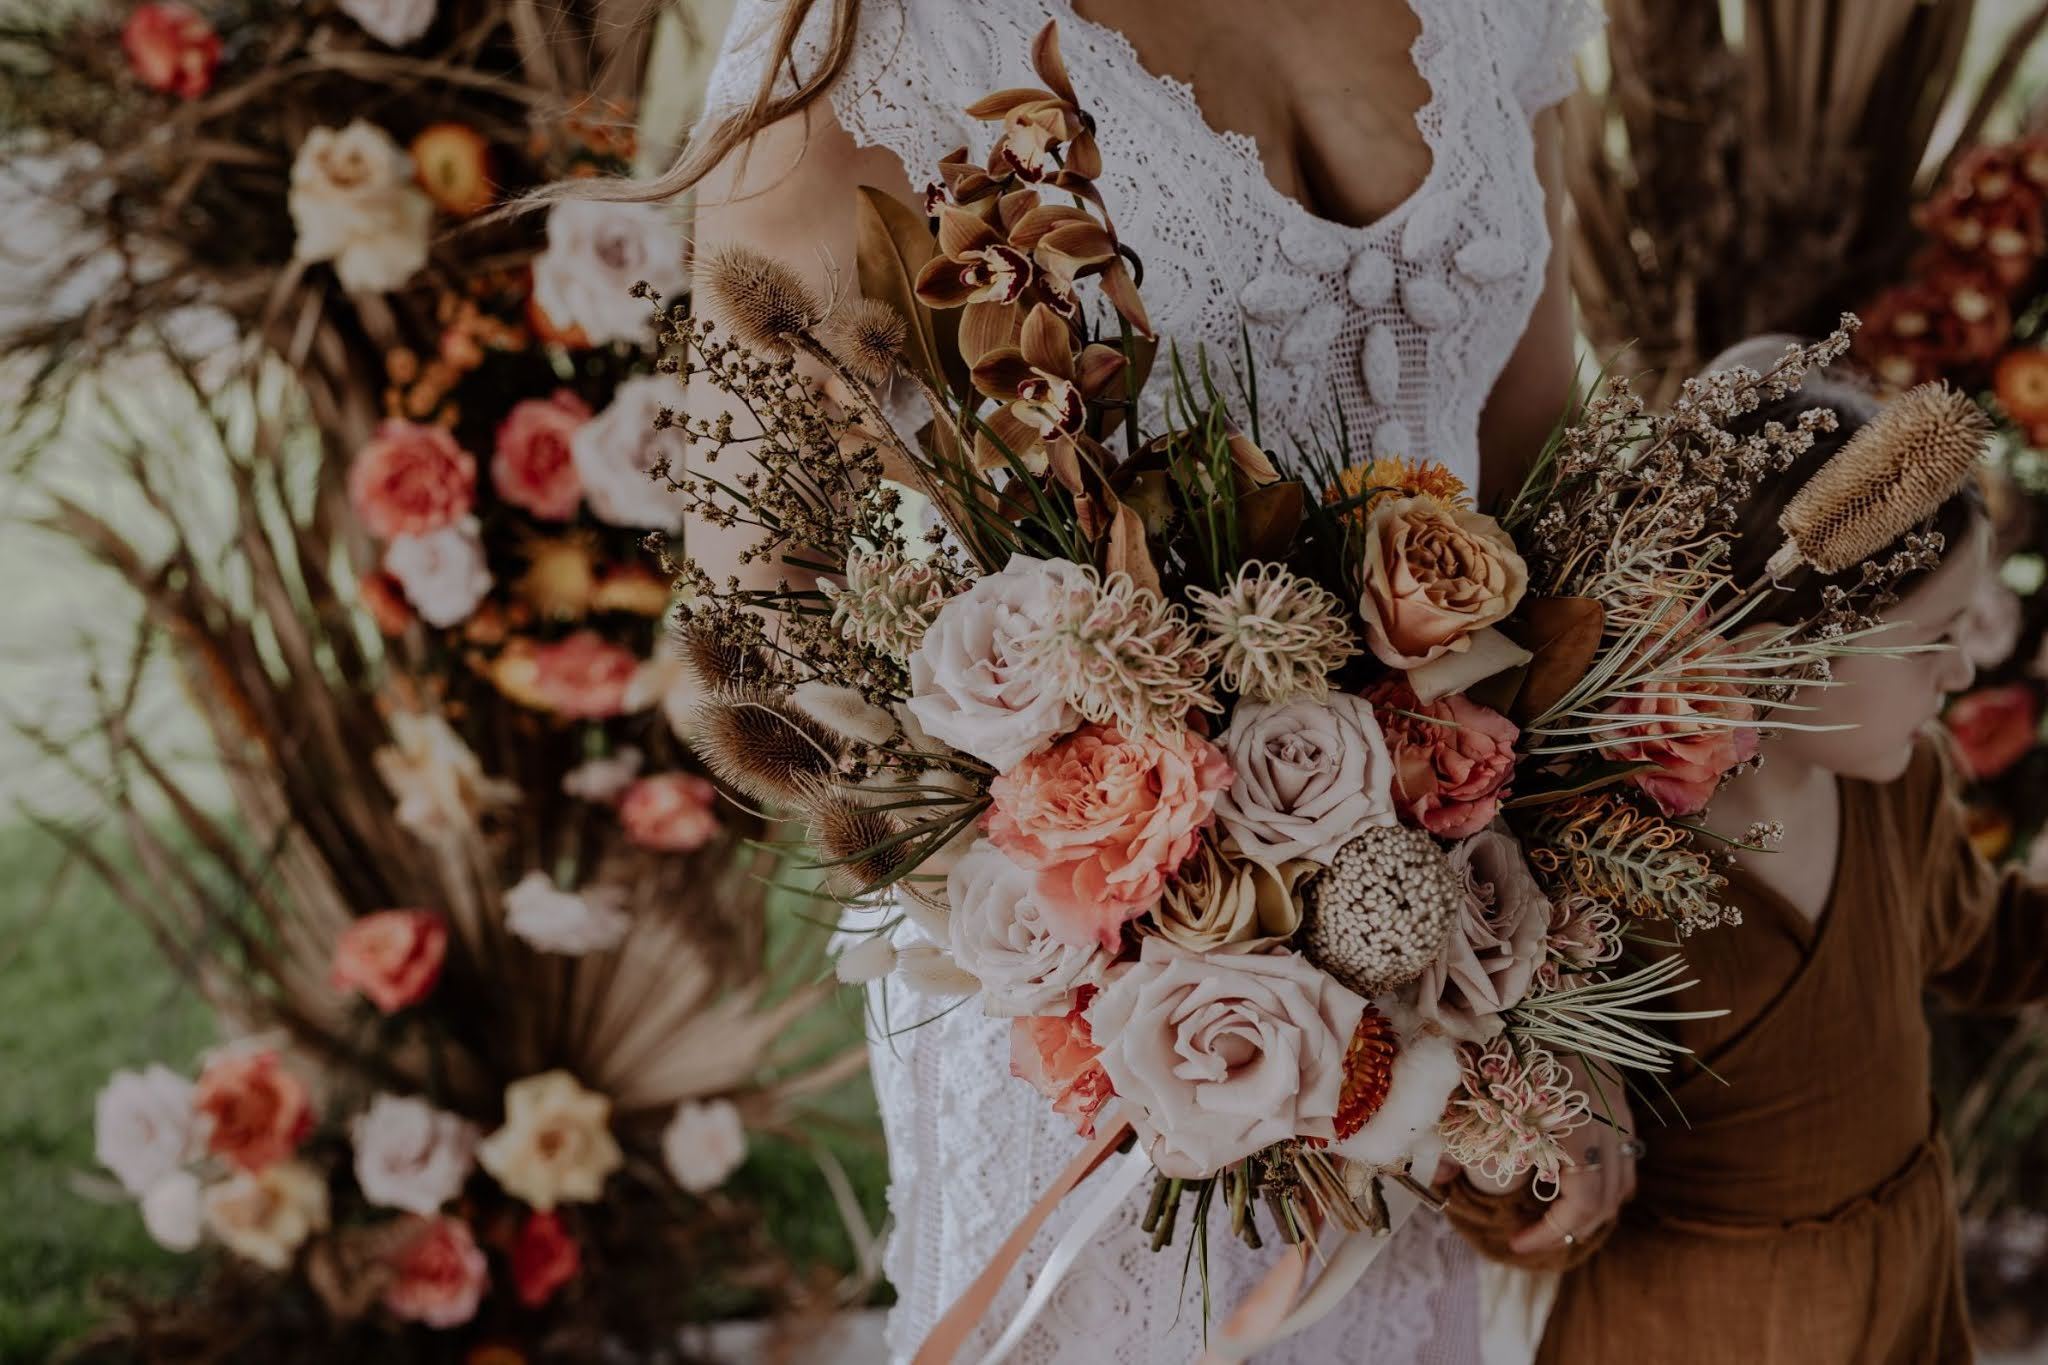 luna wilde photography central coast weddings venue bridal gowns wedding florals styling stationery